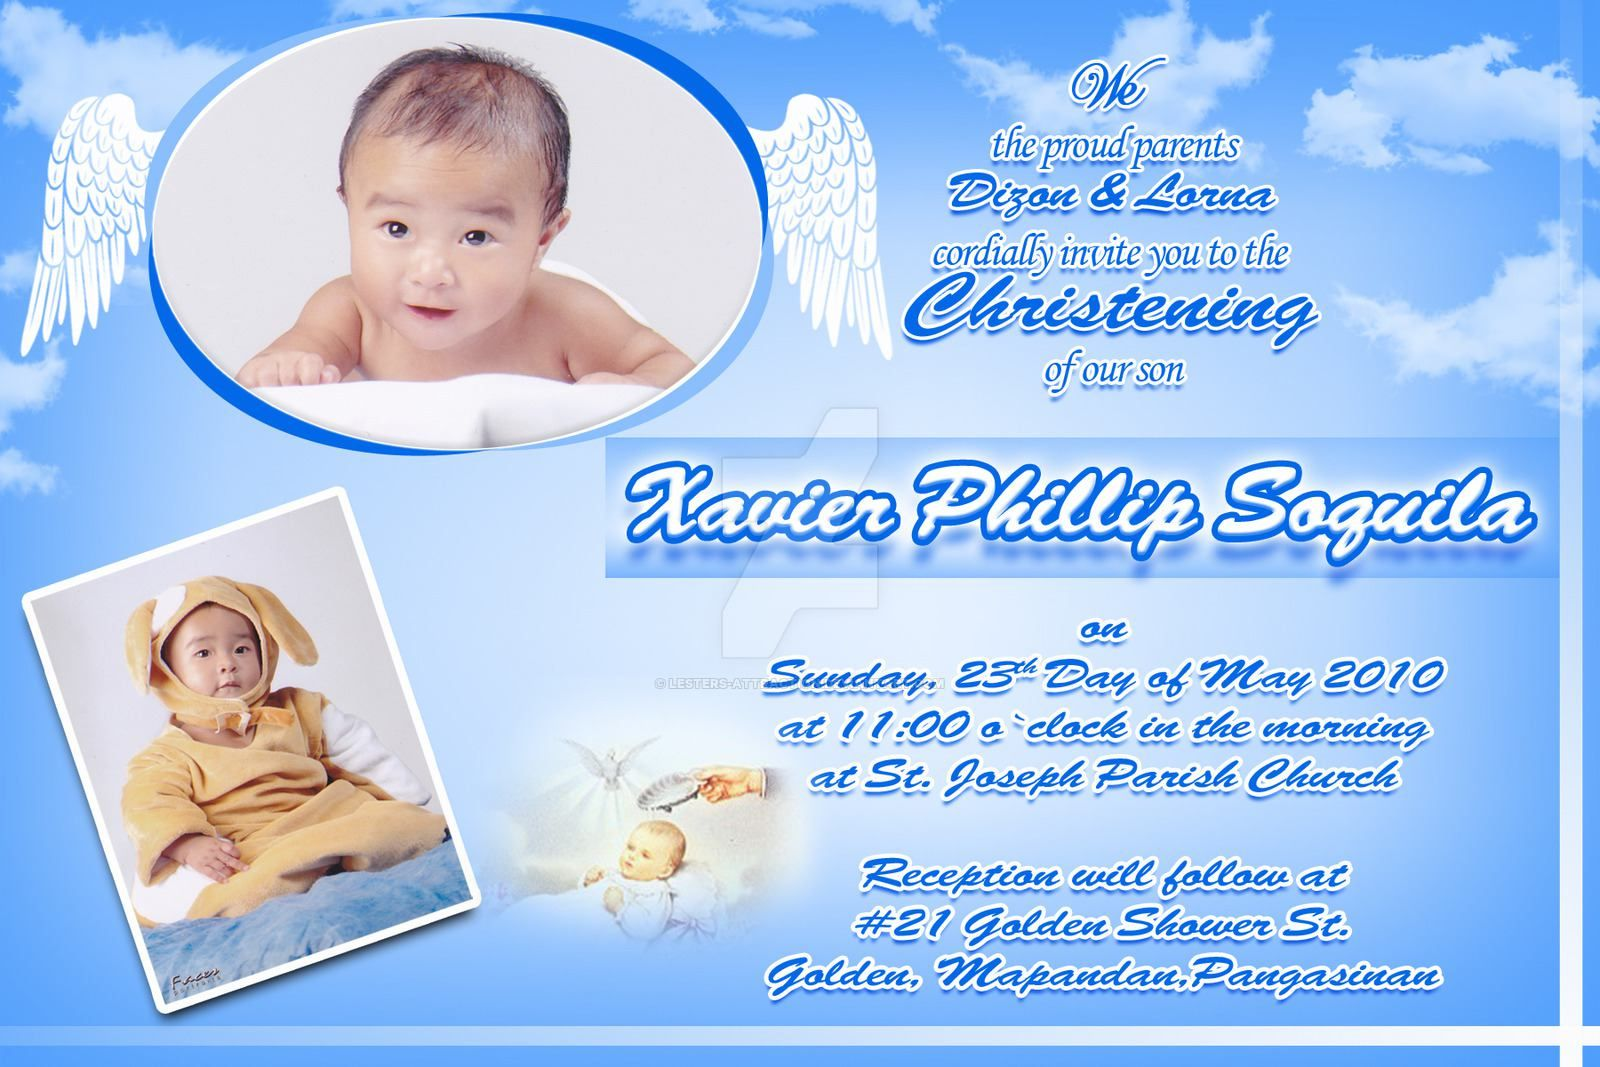 Christening Invitation Card Maker Christening Invitation Card Maker Software Superb Invit Invitation Card Maker Christening Invitations Baptism Invitations